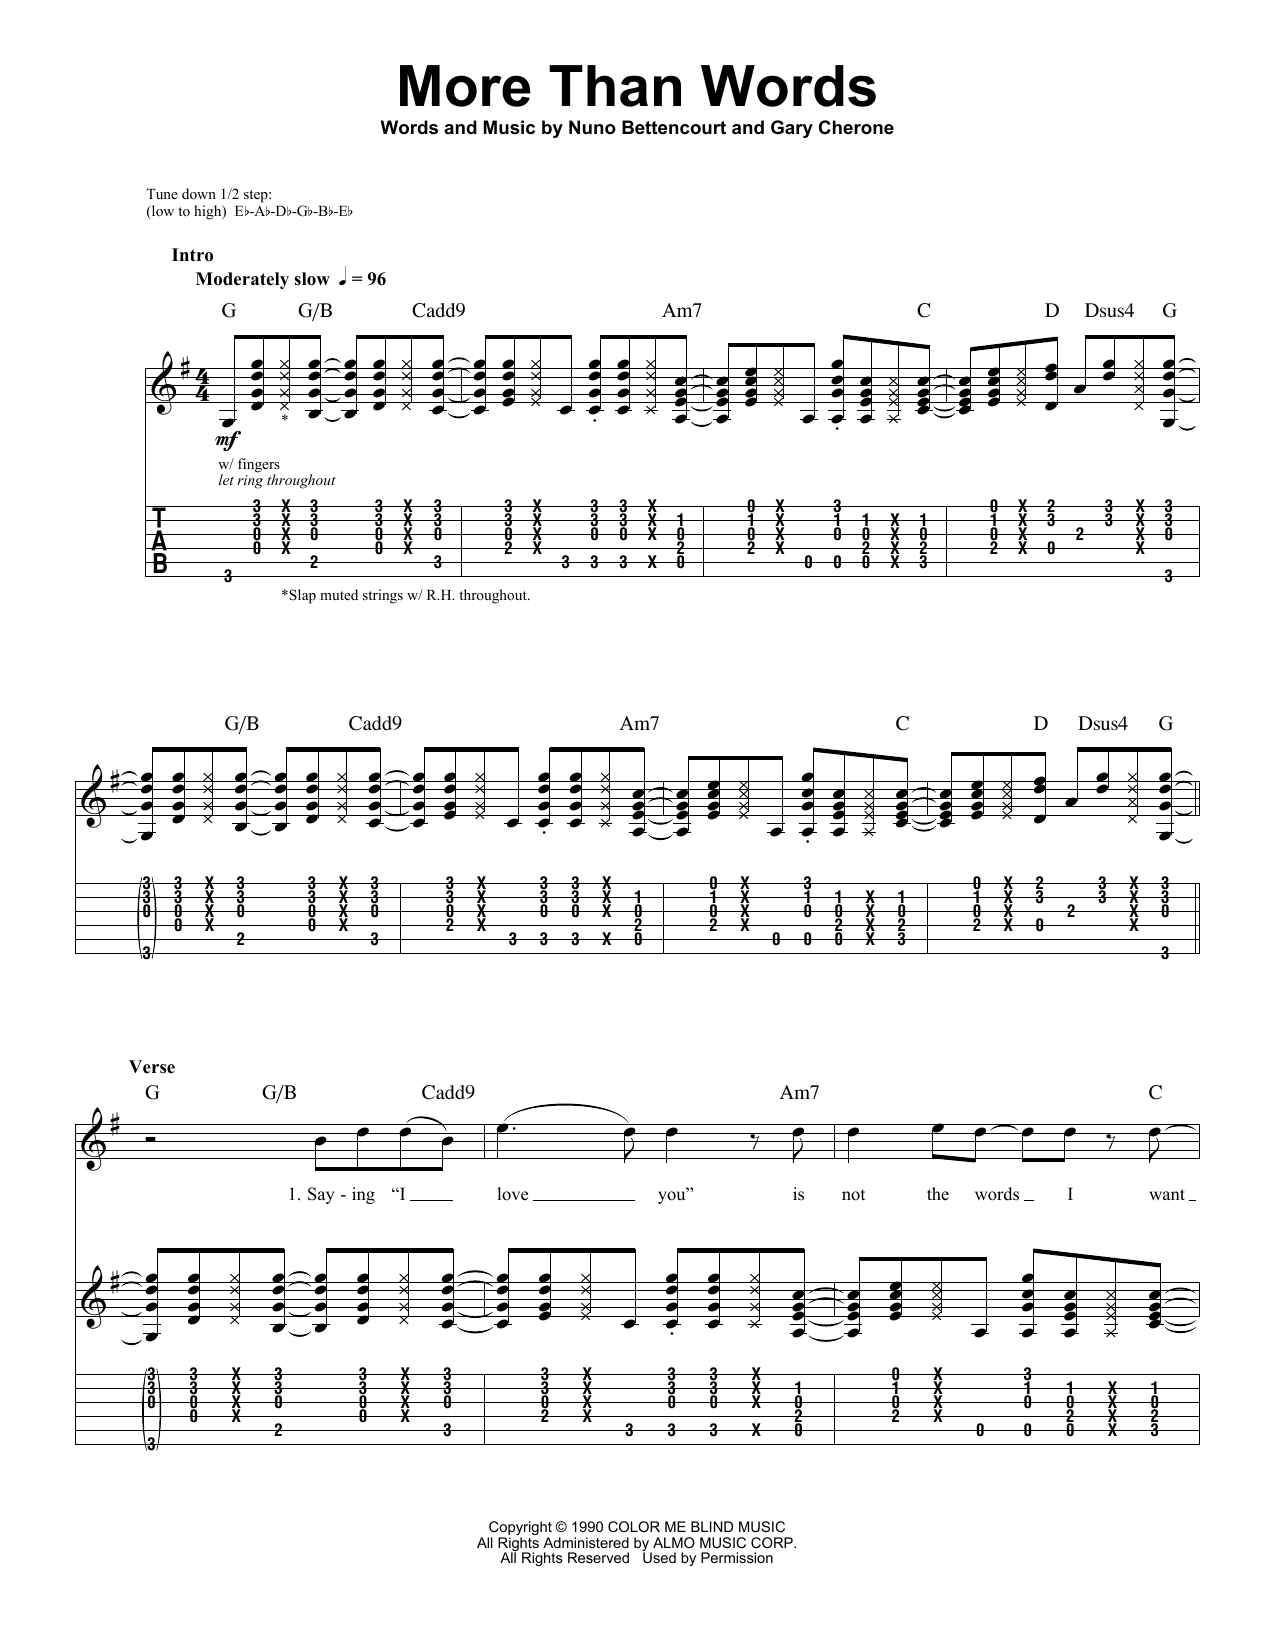 More Than Words (Guitar Tab (Single Guitar))